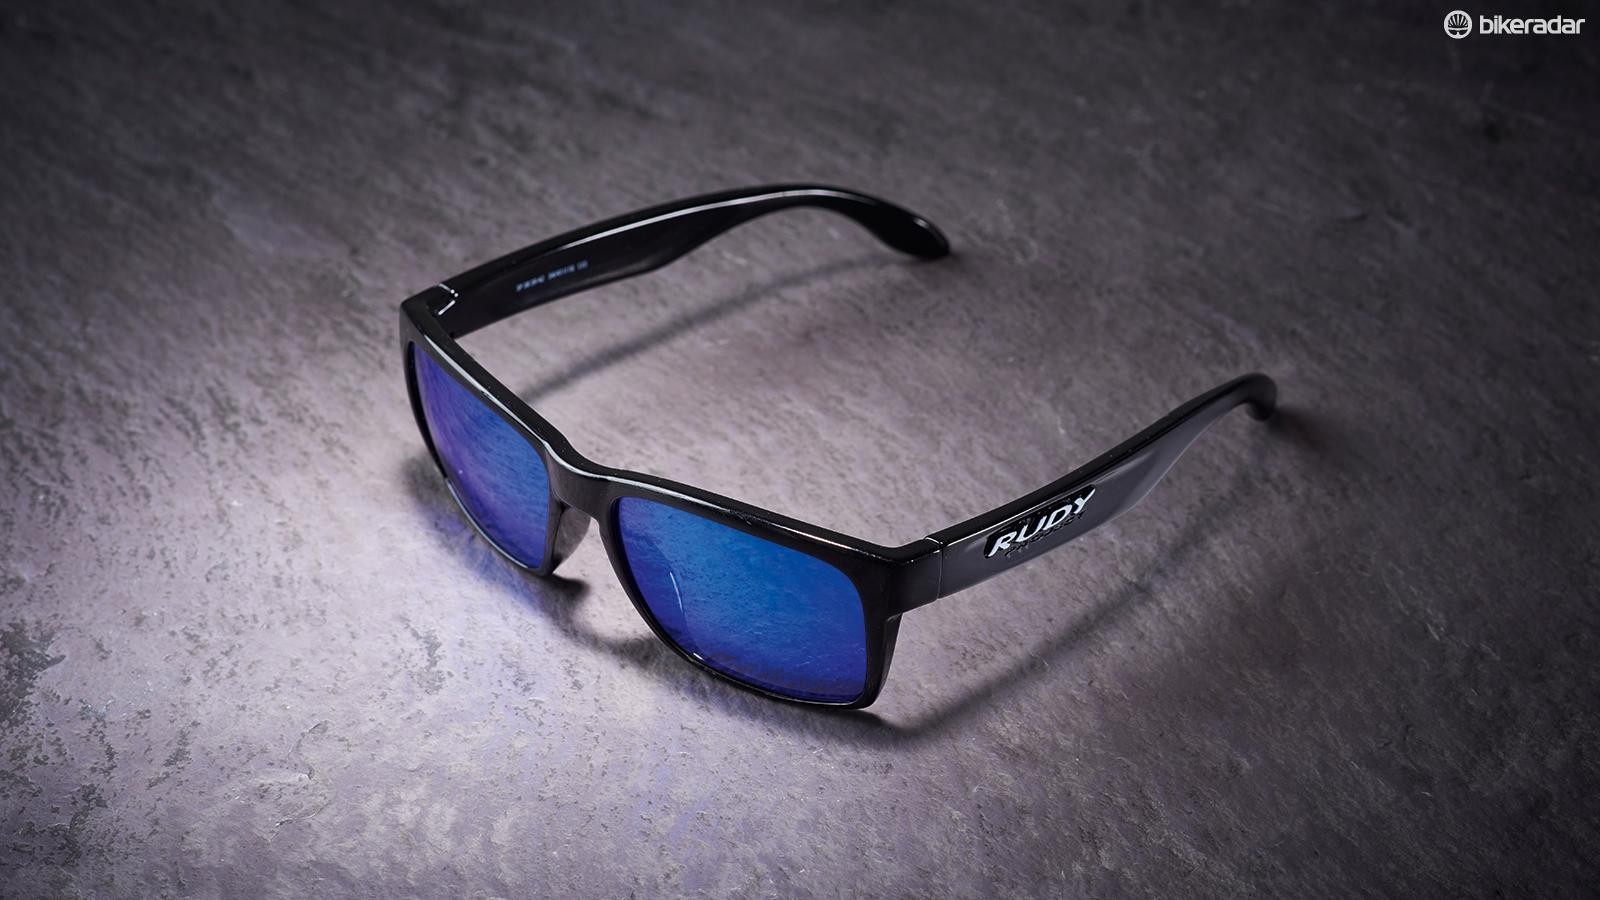 The clarity of the Rudy Project Spinhawk Slim glasses is up there with the best